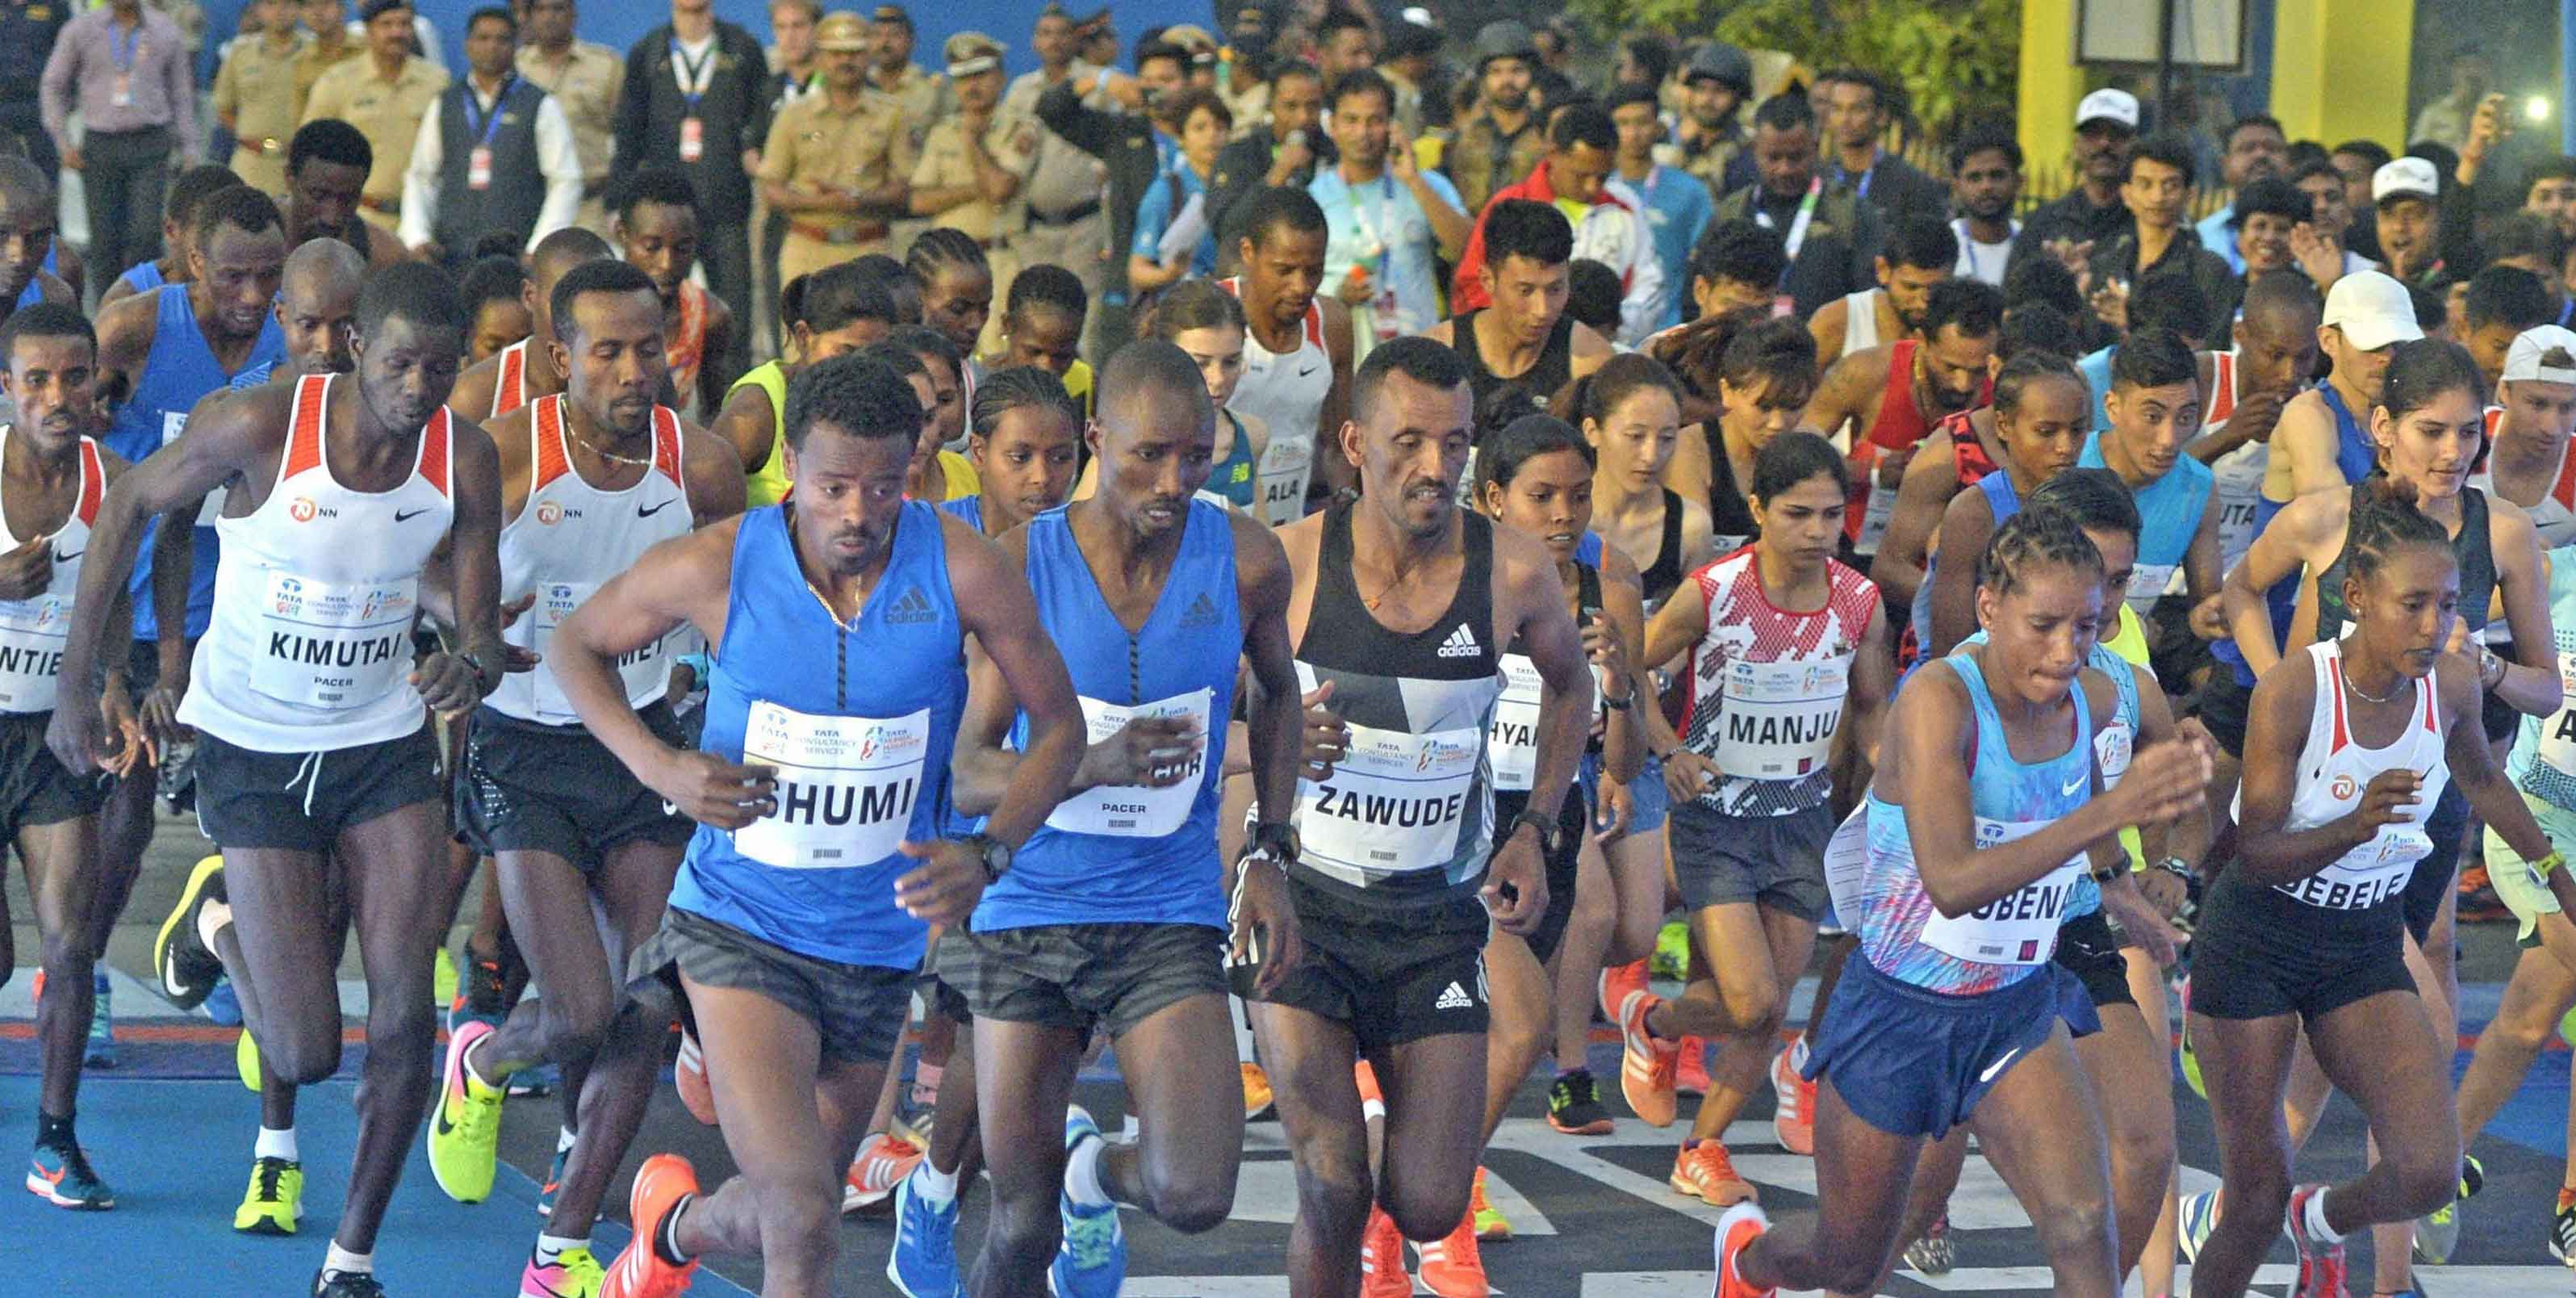 Mumbai Marathon 2018: People from all walks of life take part in annual sports event